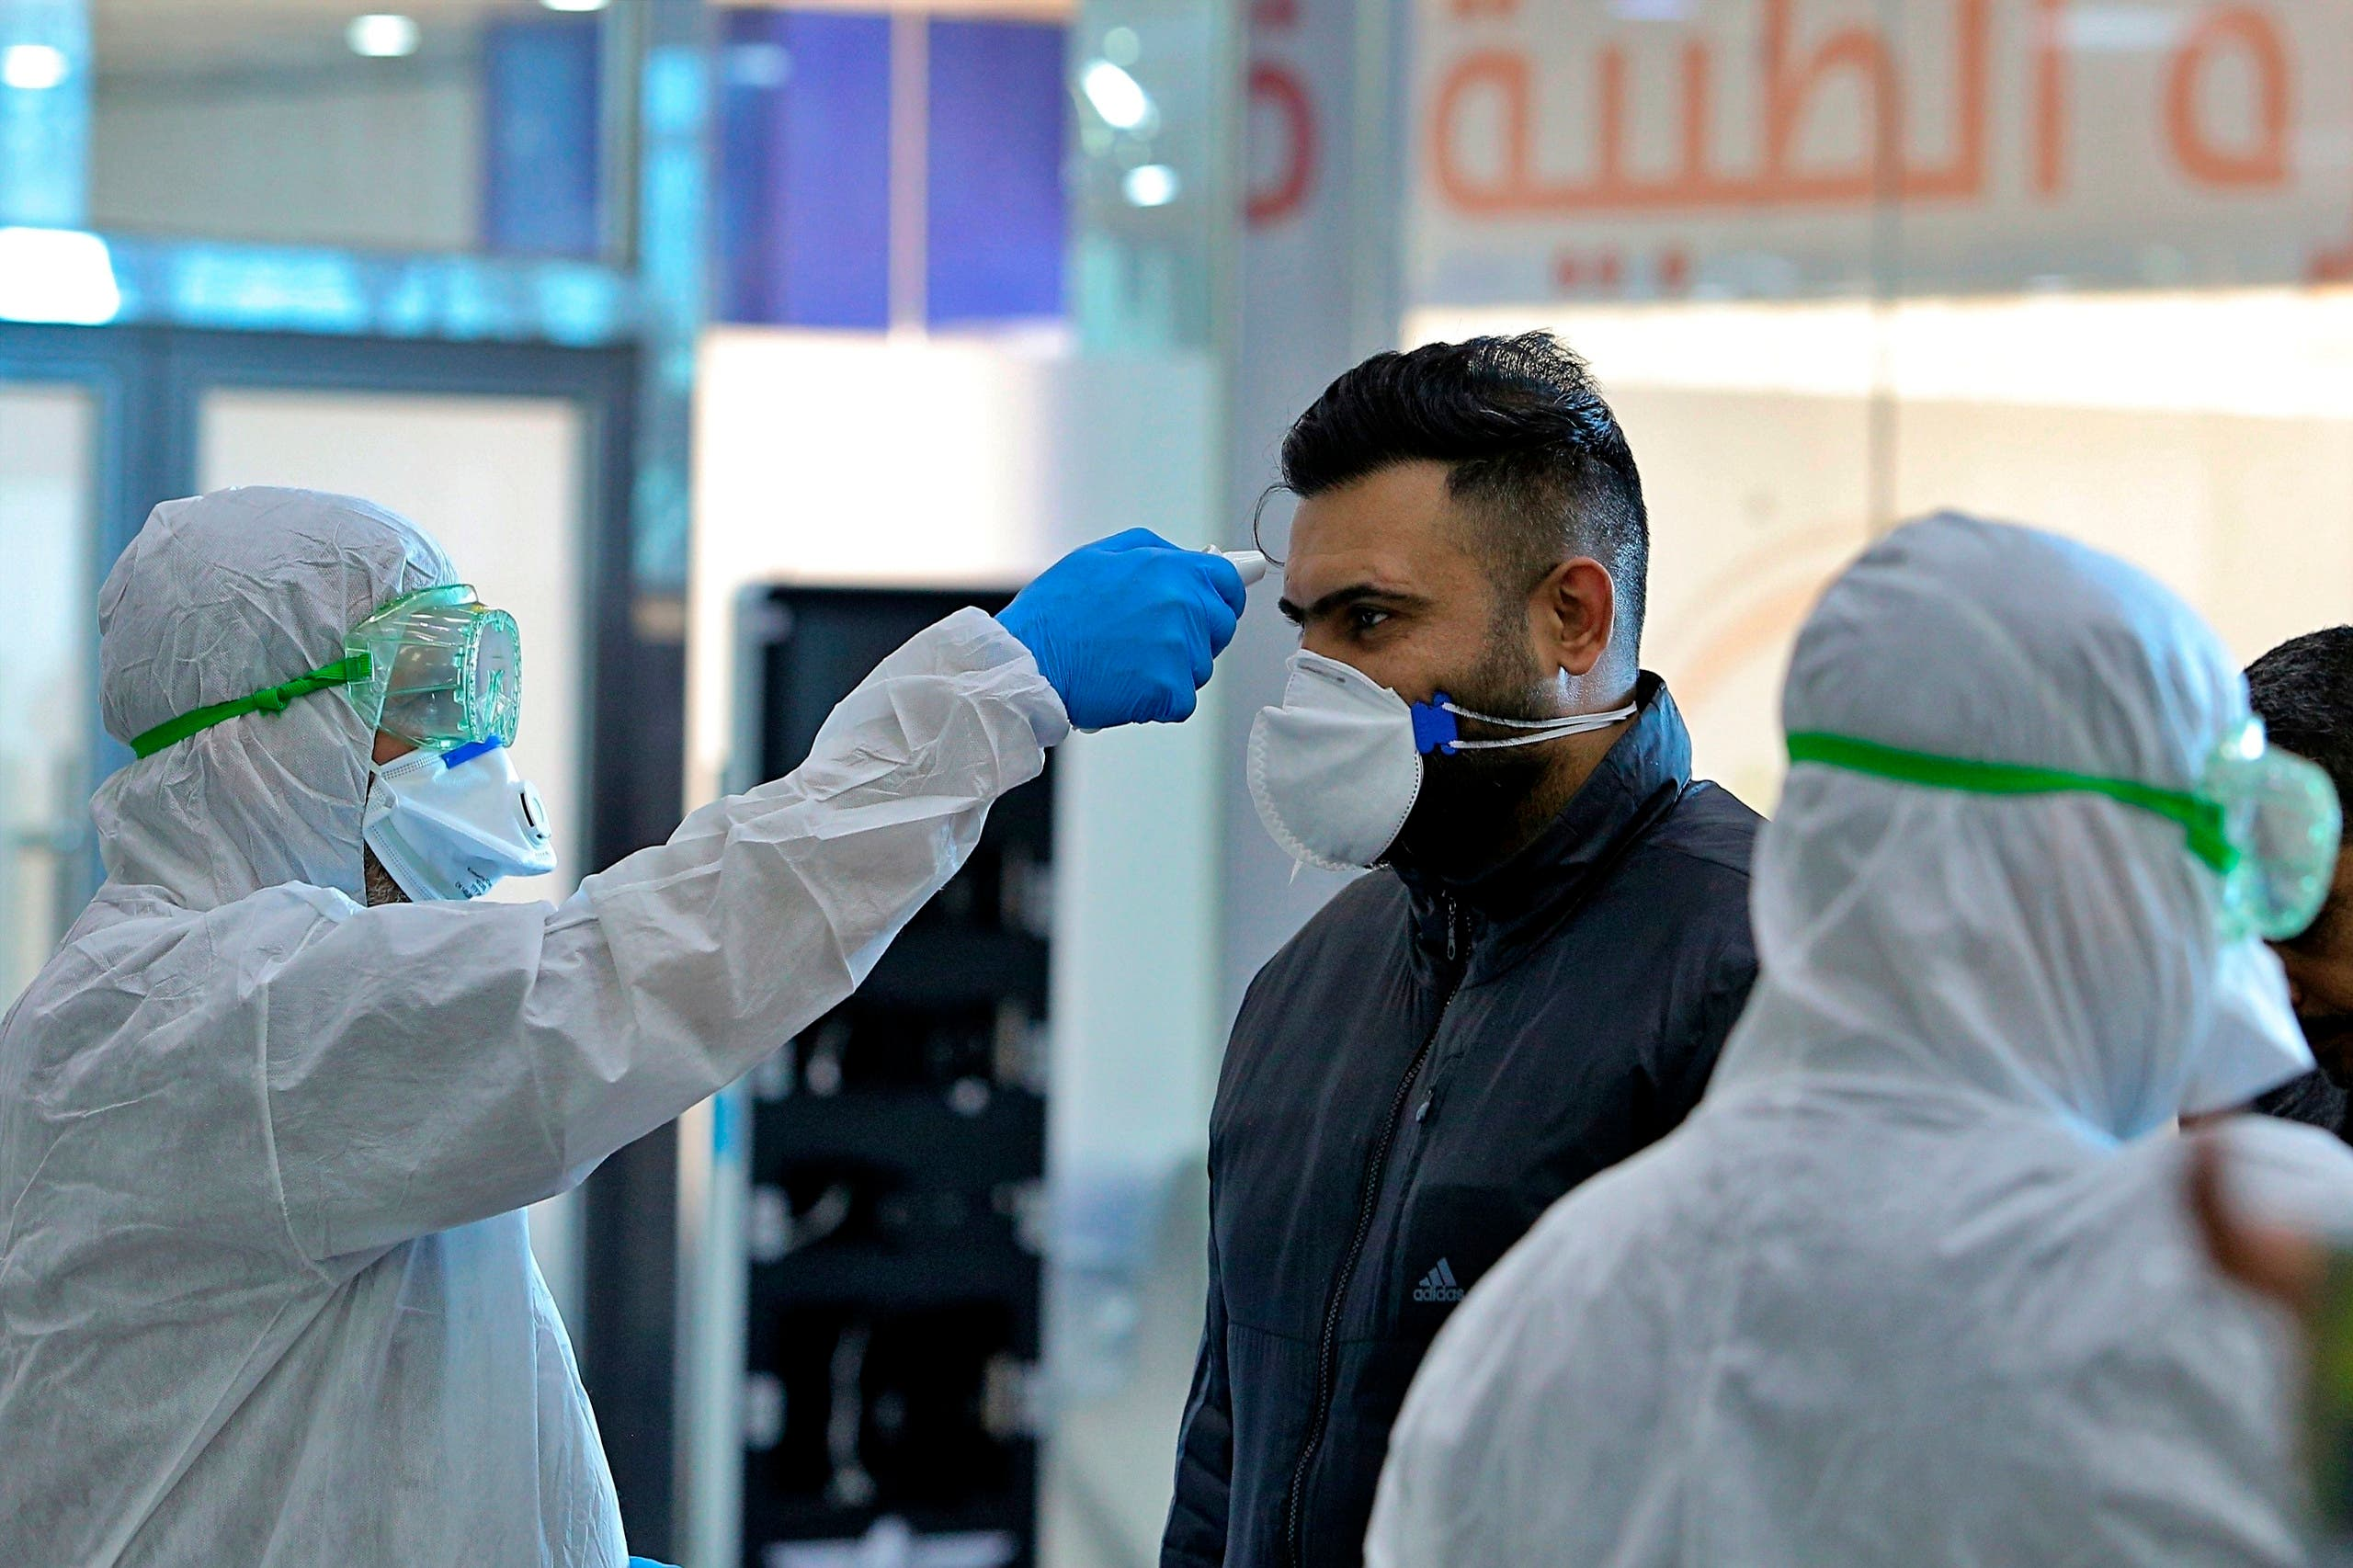 In this Friday, Feb. 21, 2020, file photo, medical staff check passengers arriving from Iran in the airport in Najaf, Iraq. Coronavirus-infected travelers from Iran already have been discovered in Lebanon and Canada. (AP Photo/Anmar Khalil, File)